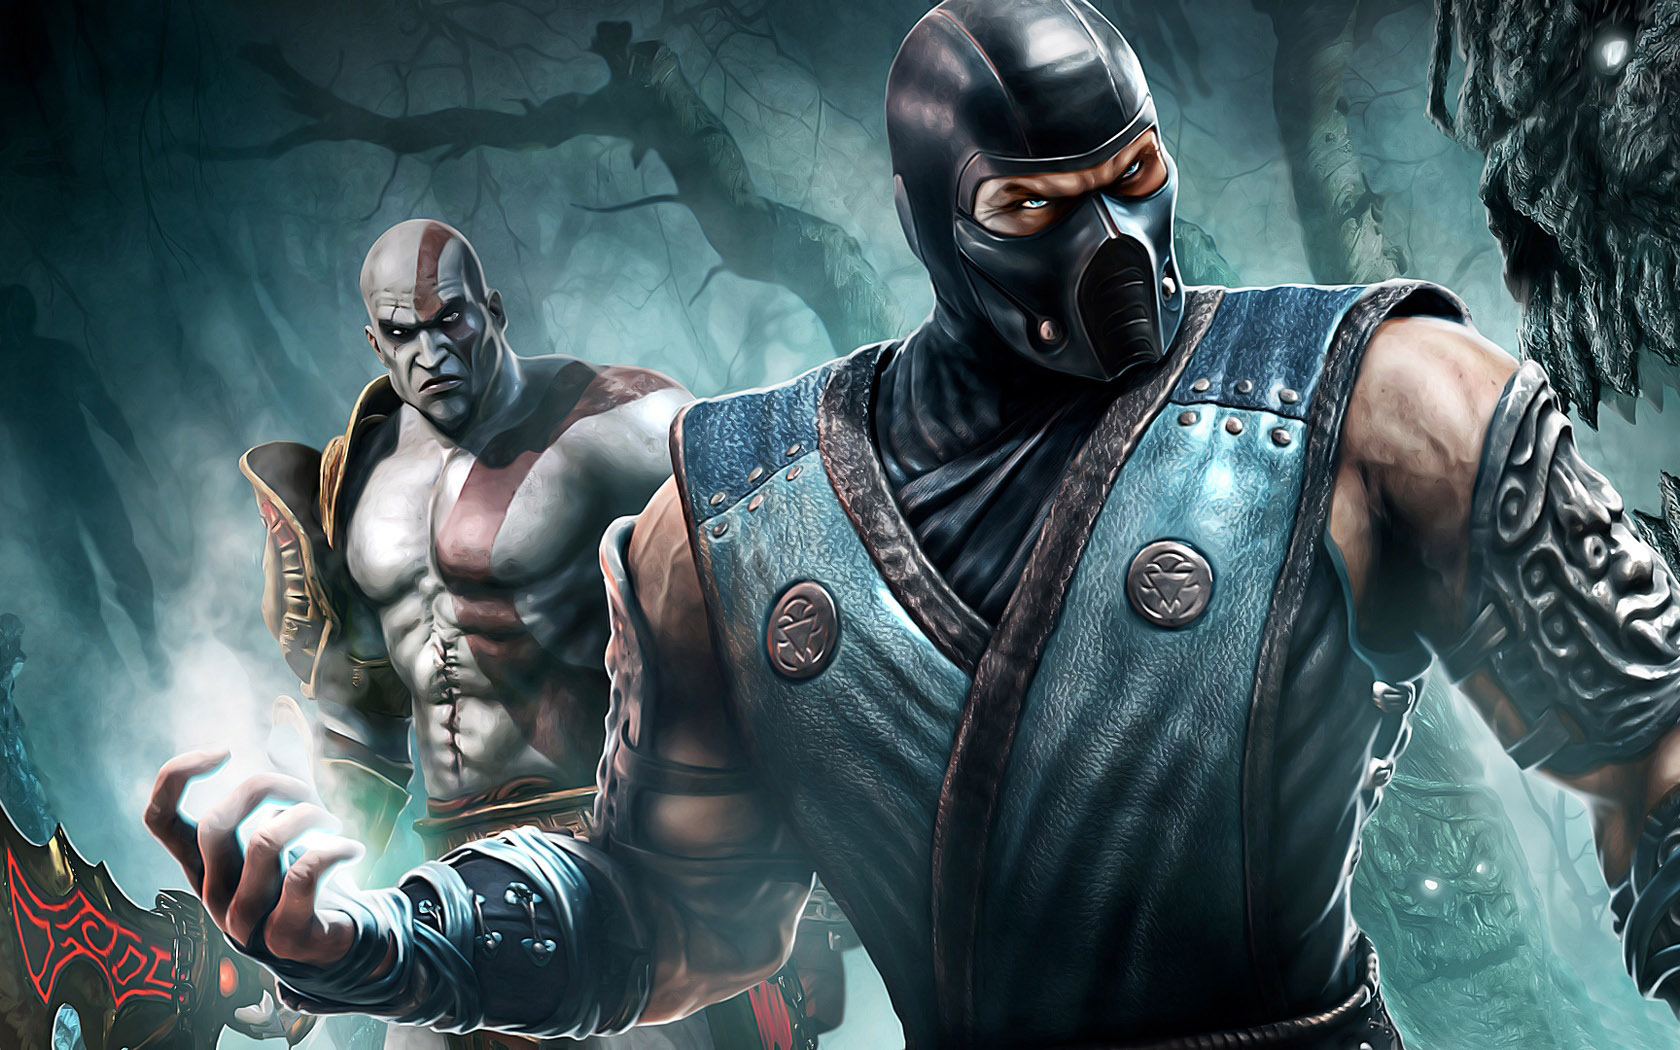 Mortal Kombat High Resolution Hd Wallpapers All Hd Wallpapers